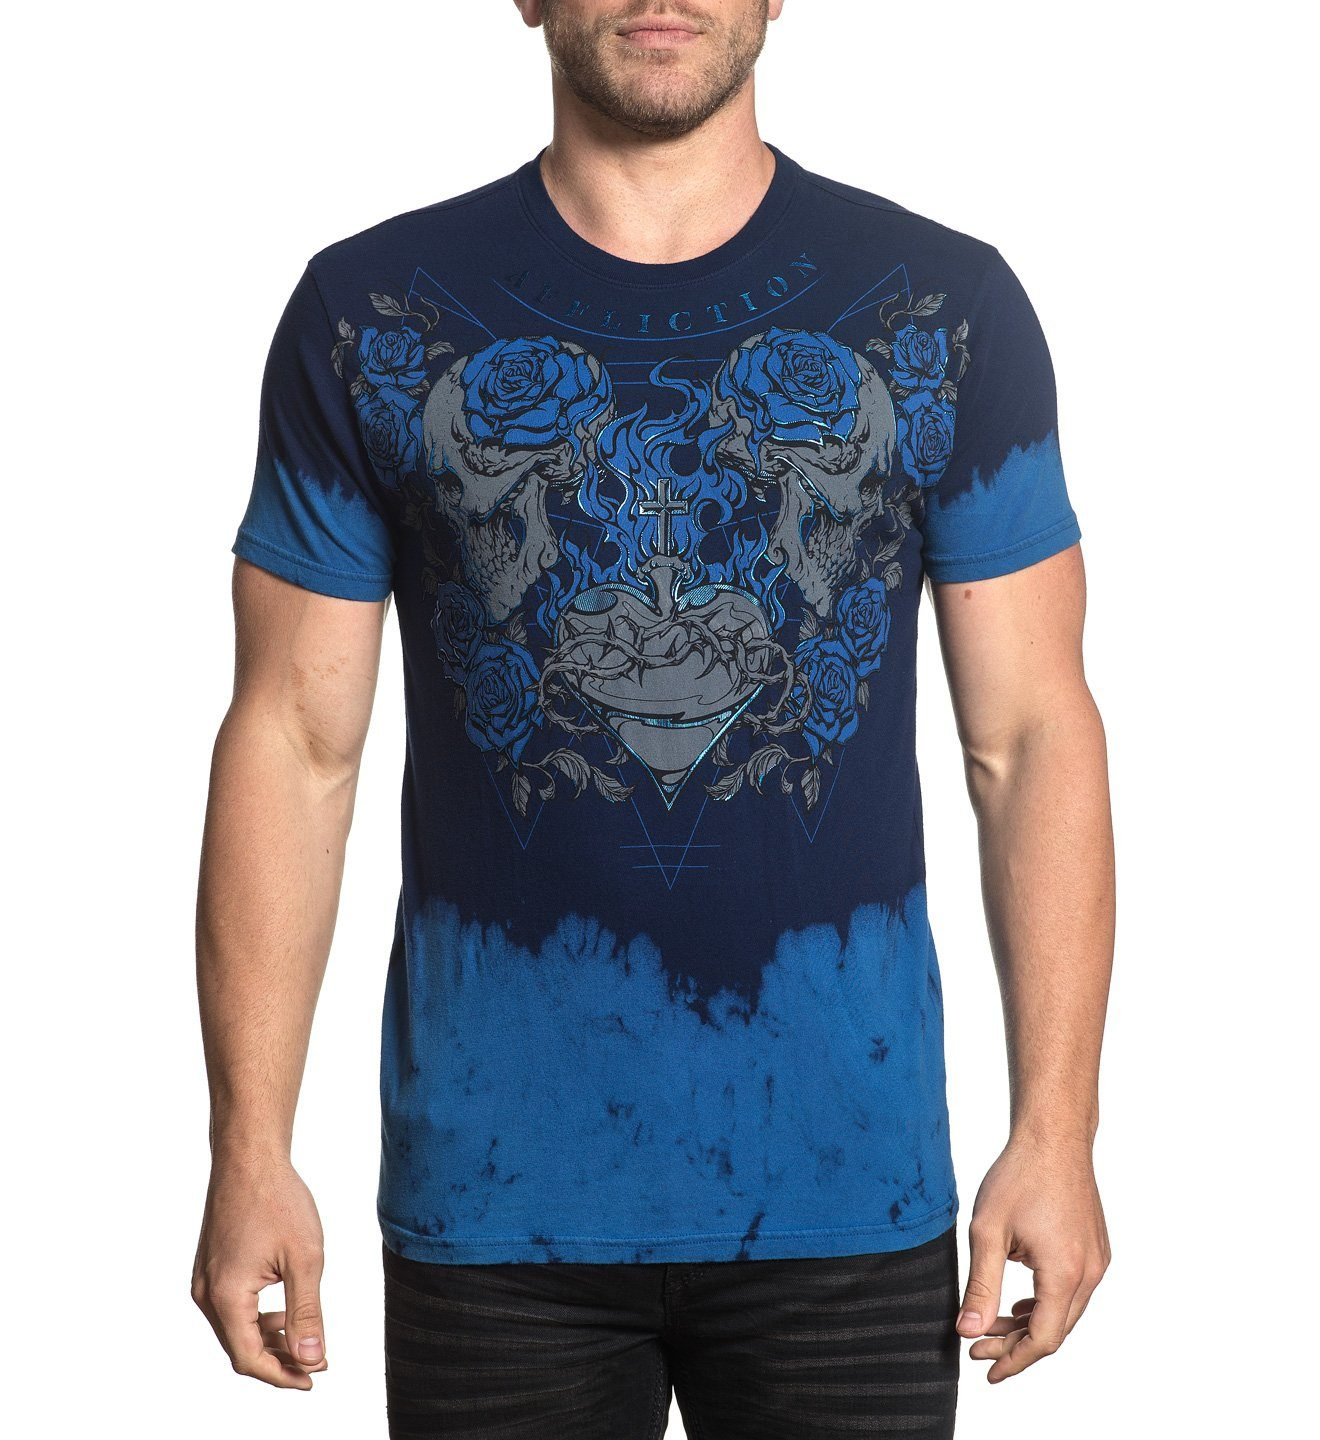 Lifesblood - Mens Short Sleeve Tees - Affliction Clothing